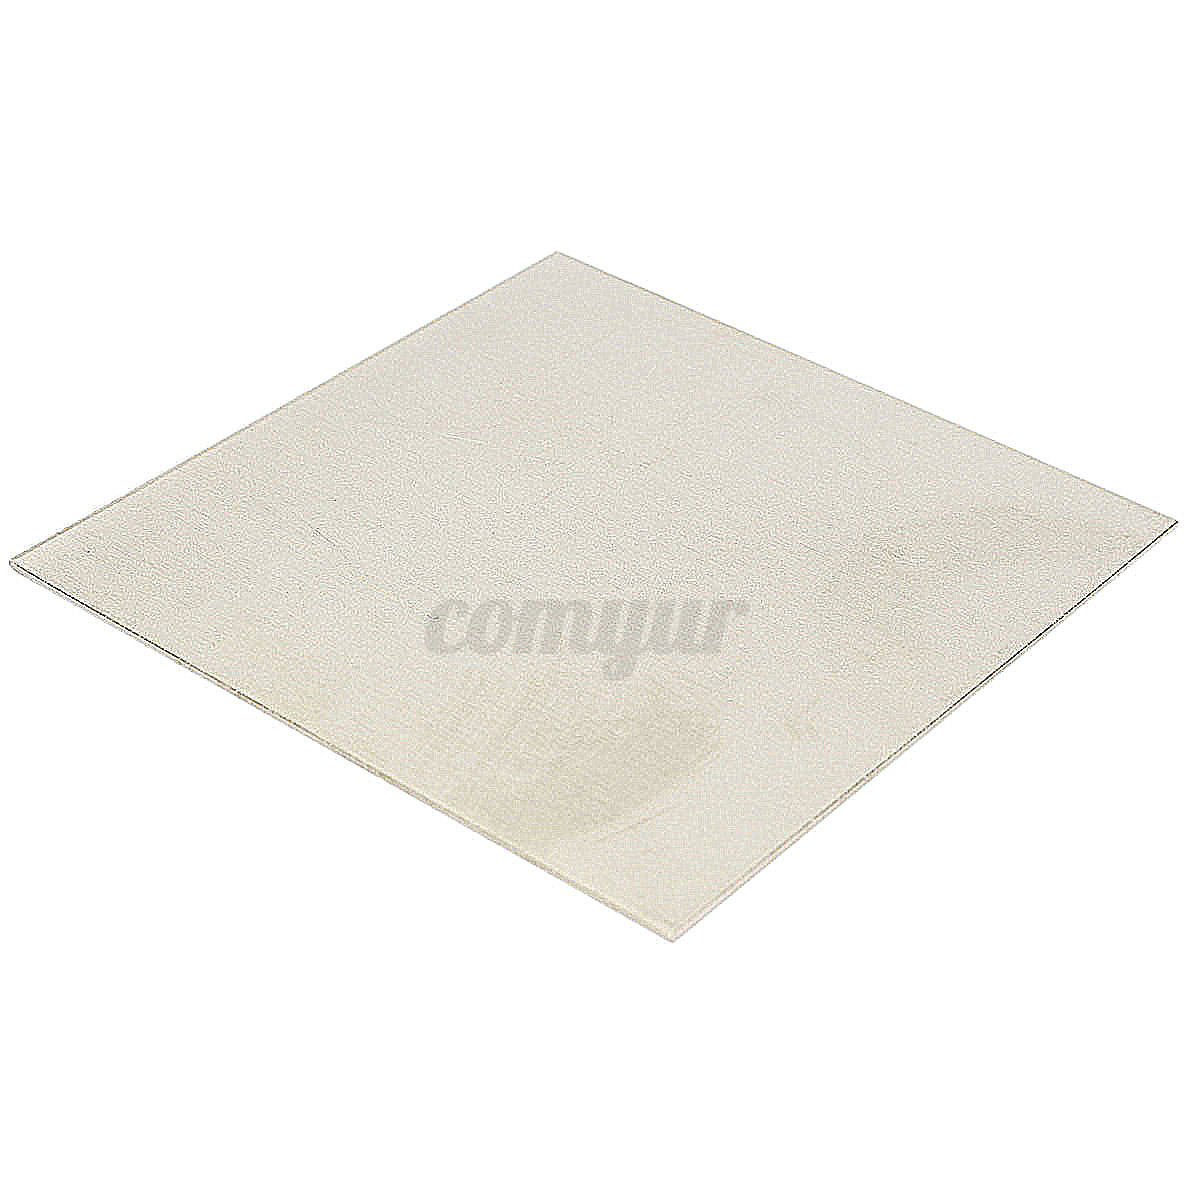 1mm-x-100mm-x-100mm-Silver-Nickel-Ni-Sheet-Plate-For-Electroplating-Catalyst